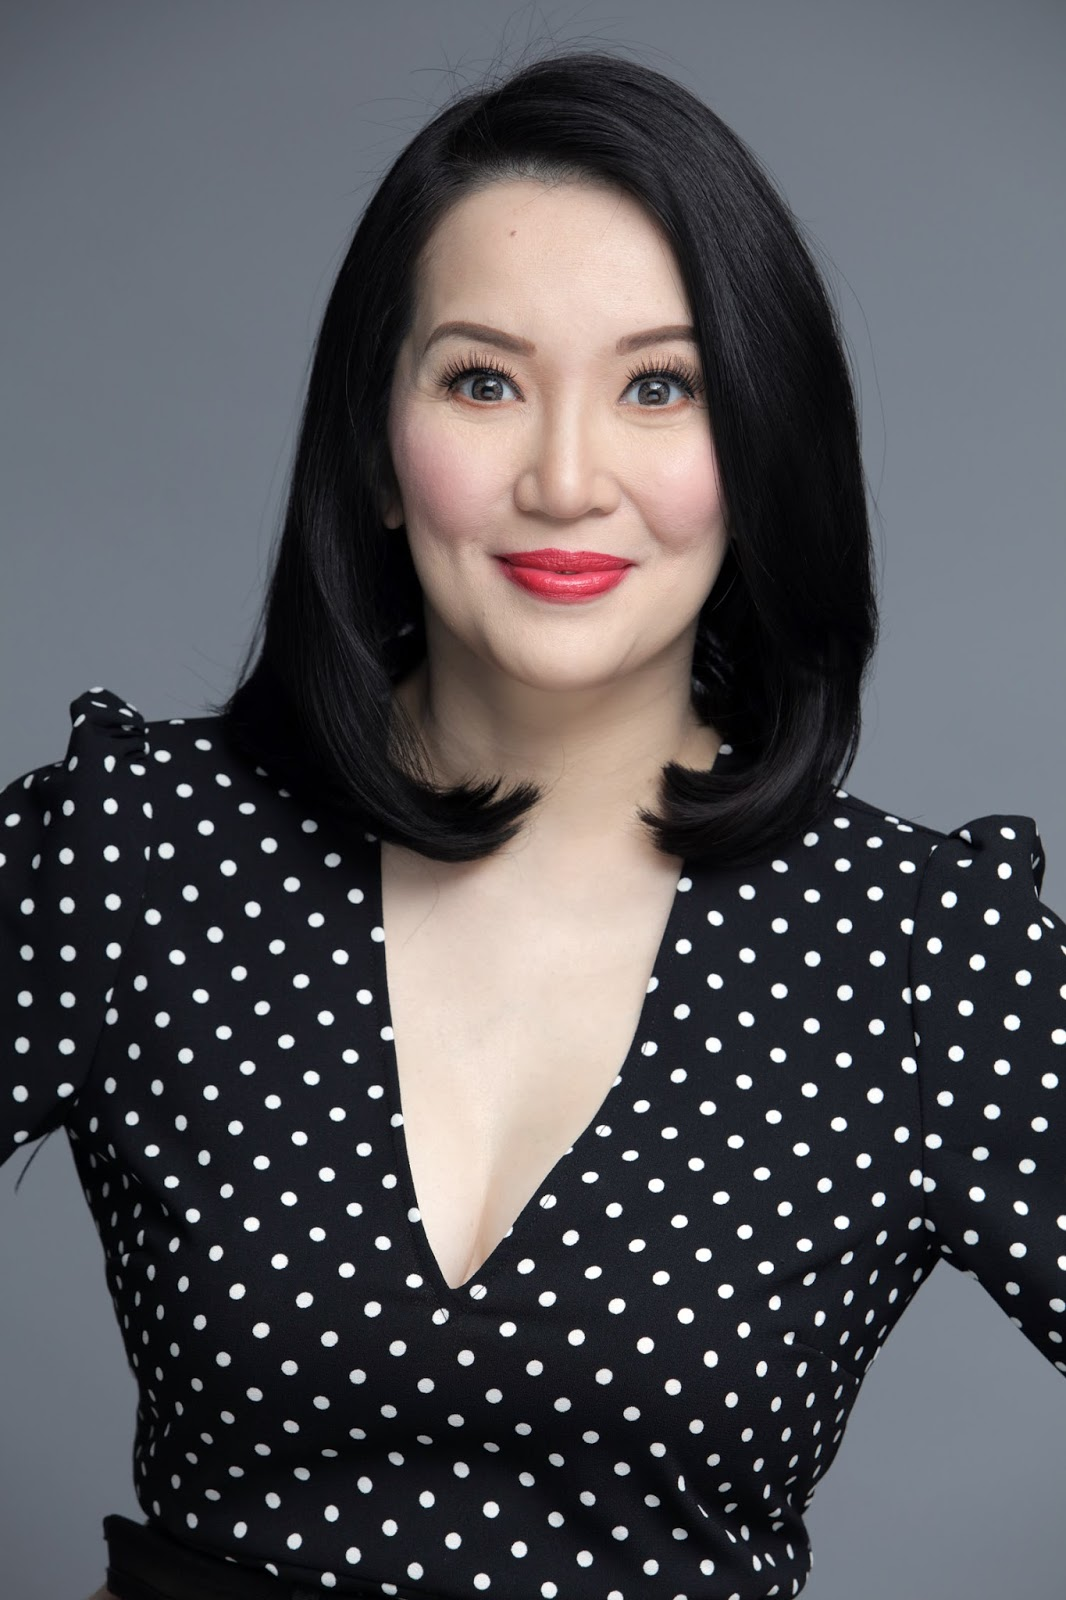 Ever Bilena Welcomes Ms Kris Aquino Sandal Voltus Marissa Series 1 He Added That Like Most Retail Products Is Facing A New Generation Of Users Makeup Trends Such As Fashionable Colors Change So Quickly